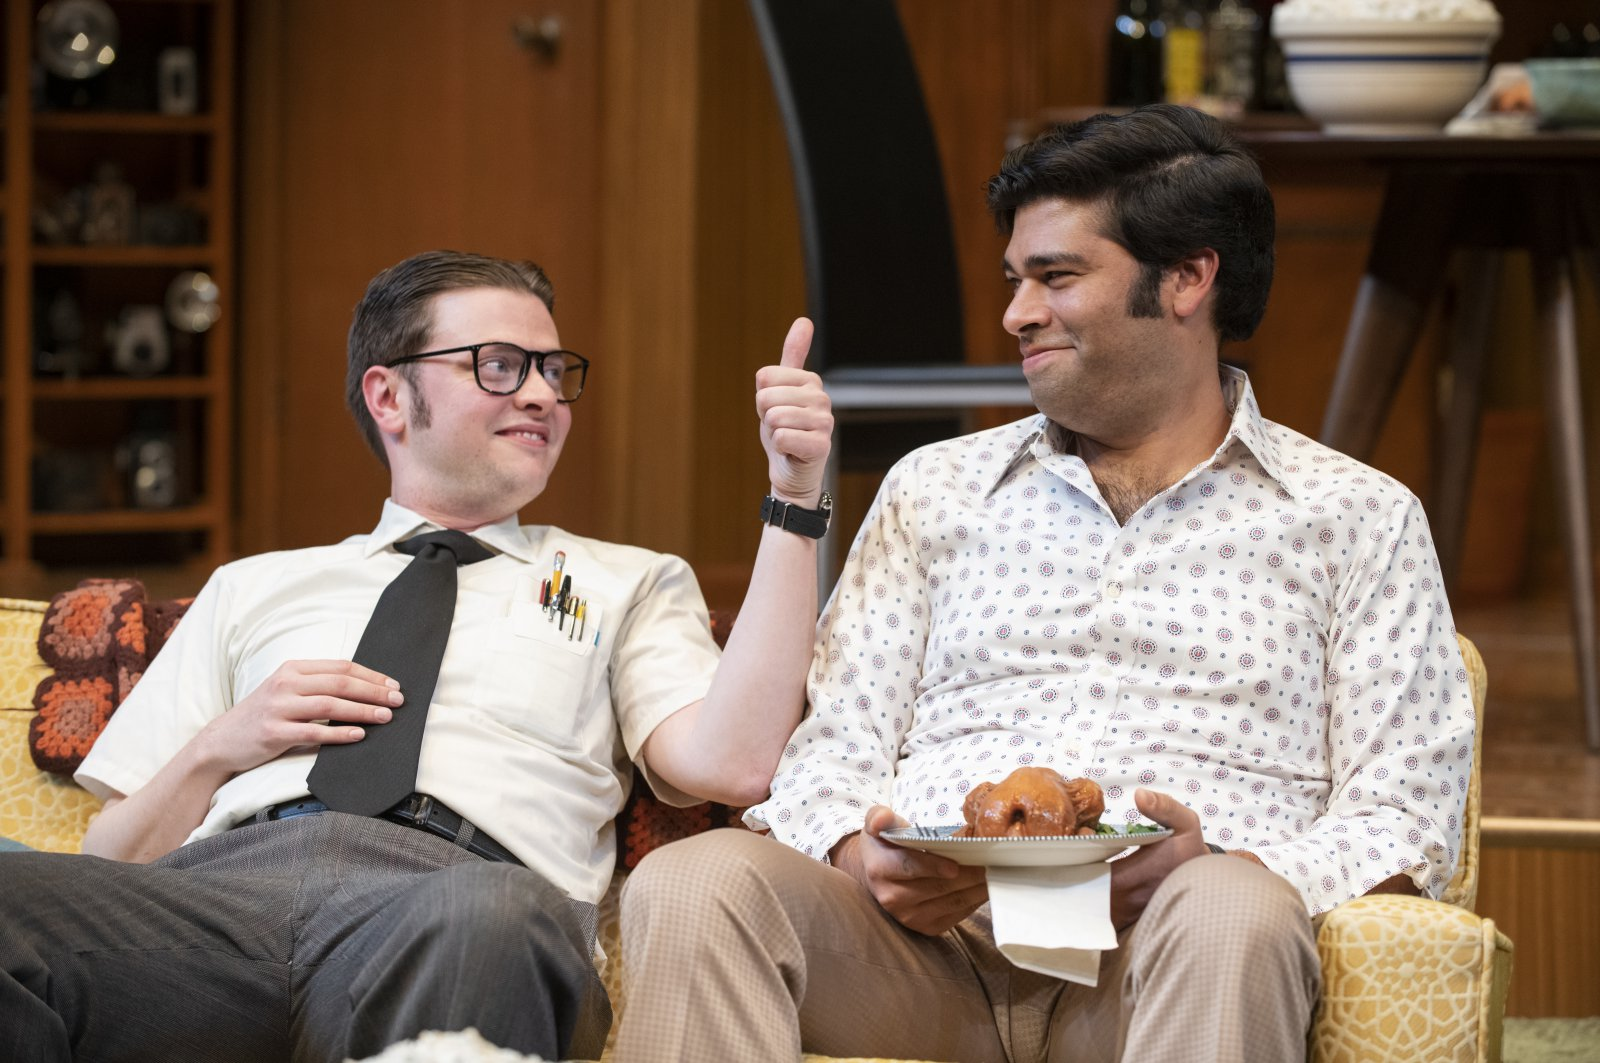 Milwaukee Repertory Theater presents The Nerd in the Quadracci Powerhouse November 12 – December 15, 2019. Left to right: Michael Doherty and Andy Nagraj.